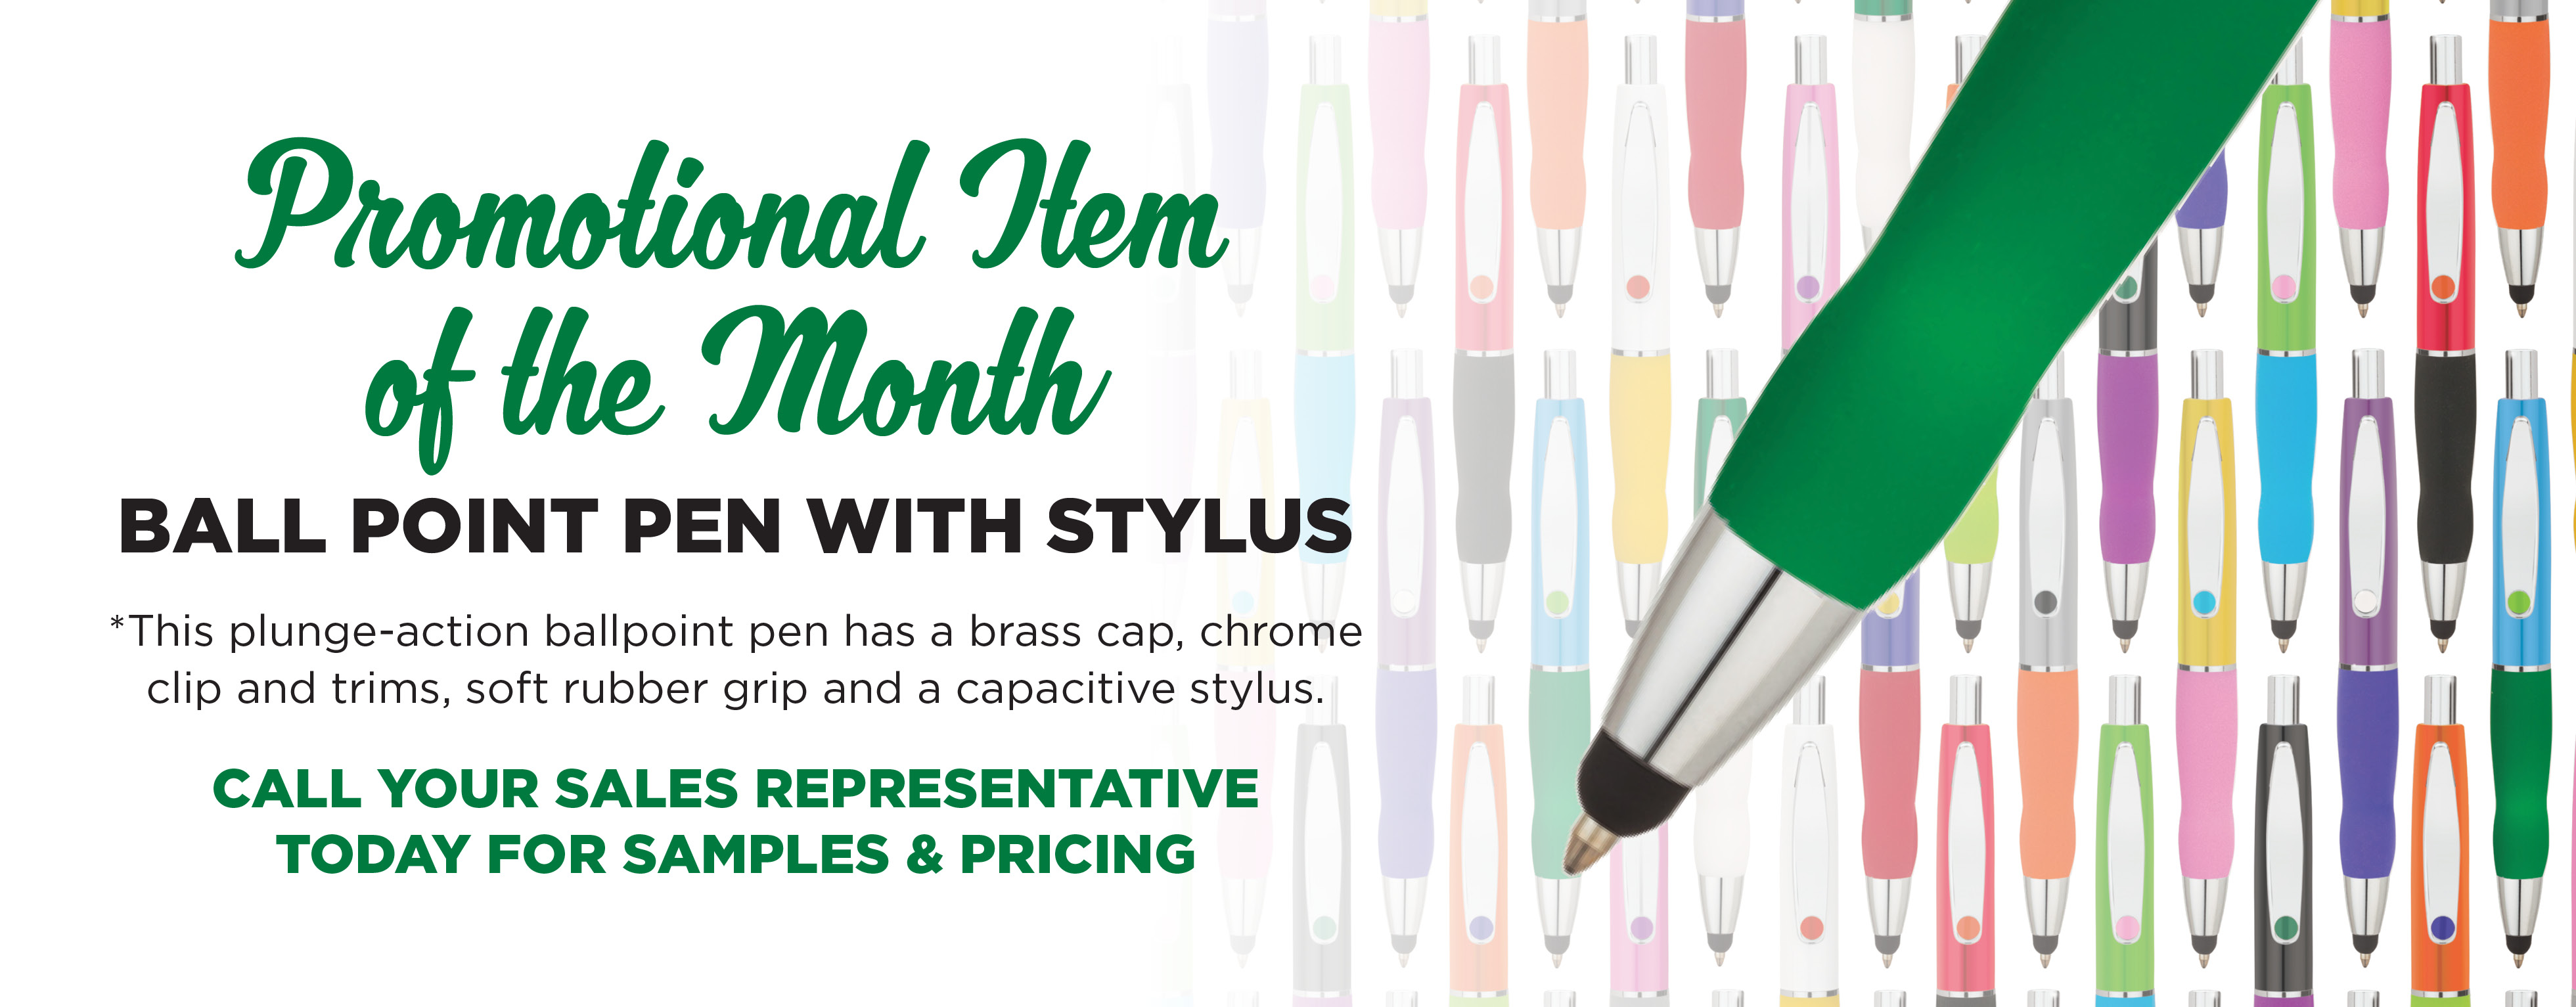 Promotional Product of the Month